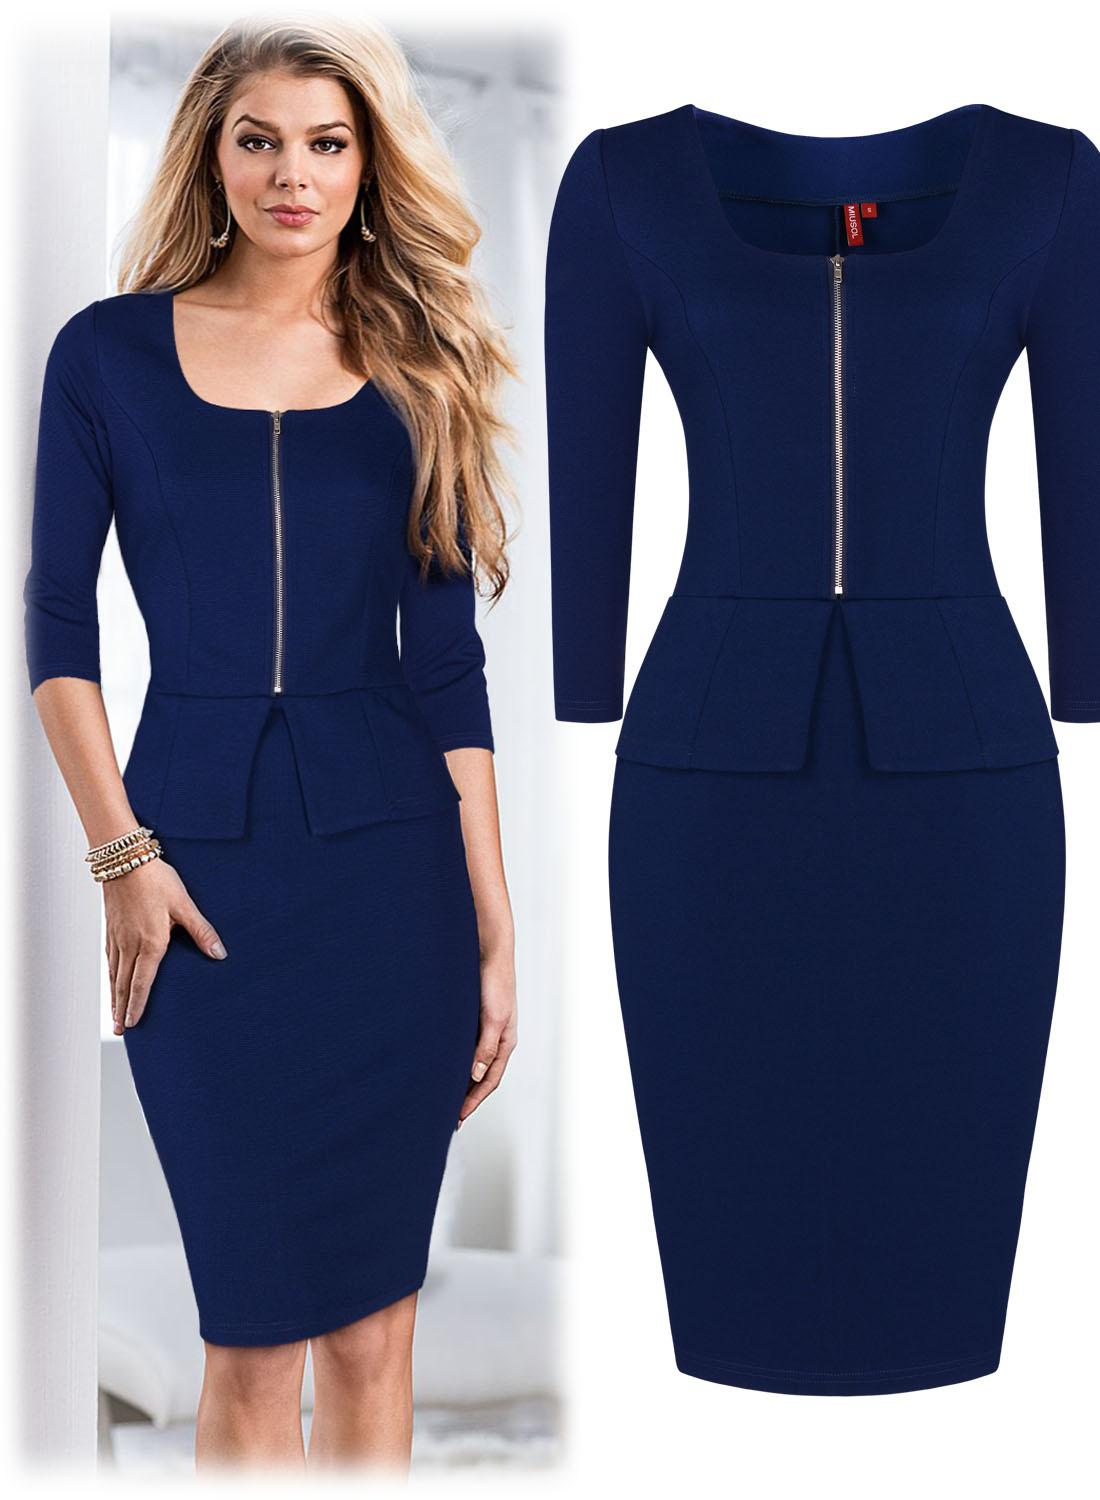 f02b0ea3a3 Women s Office Lady Work Elegant Bodycon Cocktail Party Mini Dresses Work  Wear Work Dress Fashion 3165 Pencil Dress Cocktail Party Dress Work Dress  Online ...